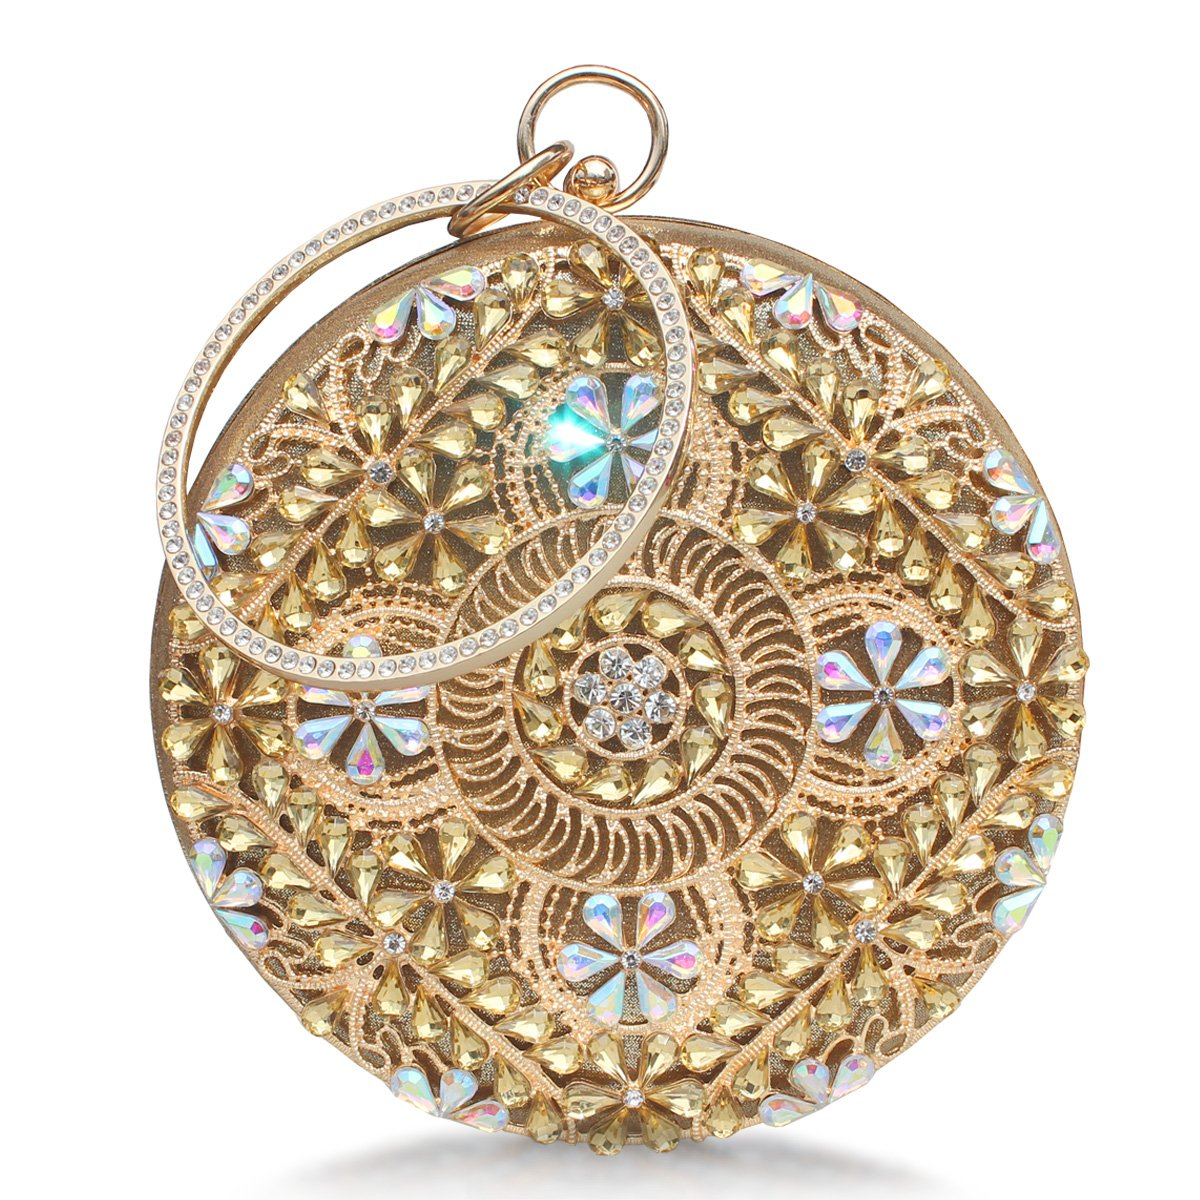 Womens Evening Bag Round Rhinestone Crystal Clutch Purse Ring Handle Handbag For Wedding and Party Gold.